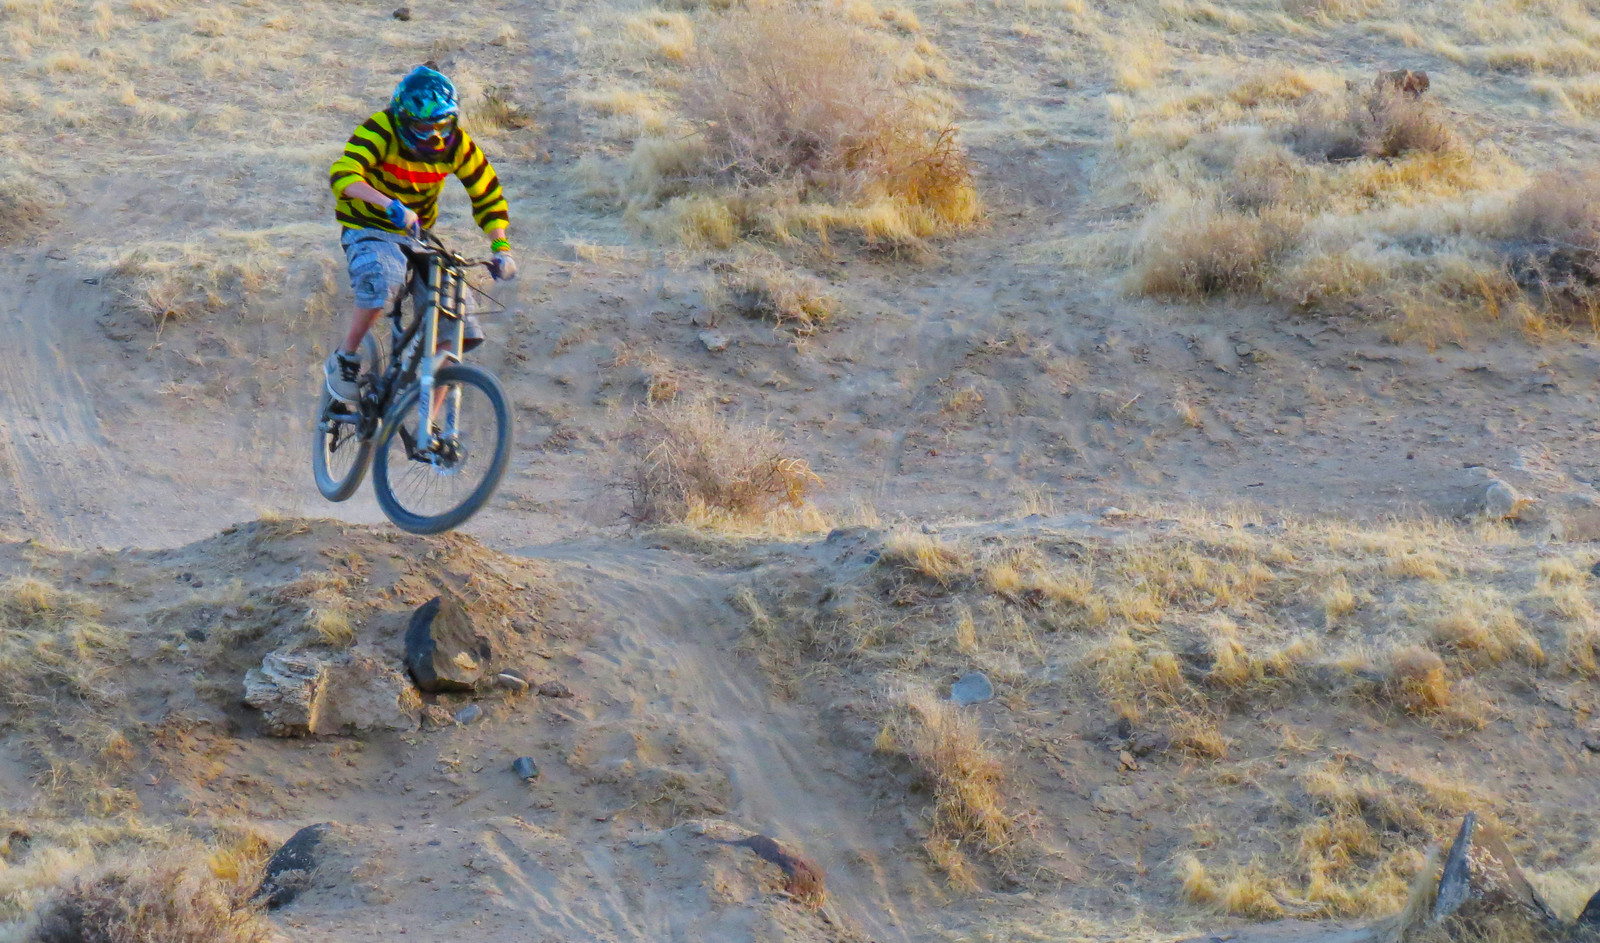 Scrub 3  - Moosey - Mountain Biking Pictures - Vital MTB